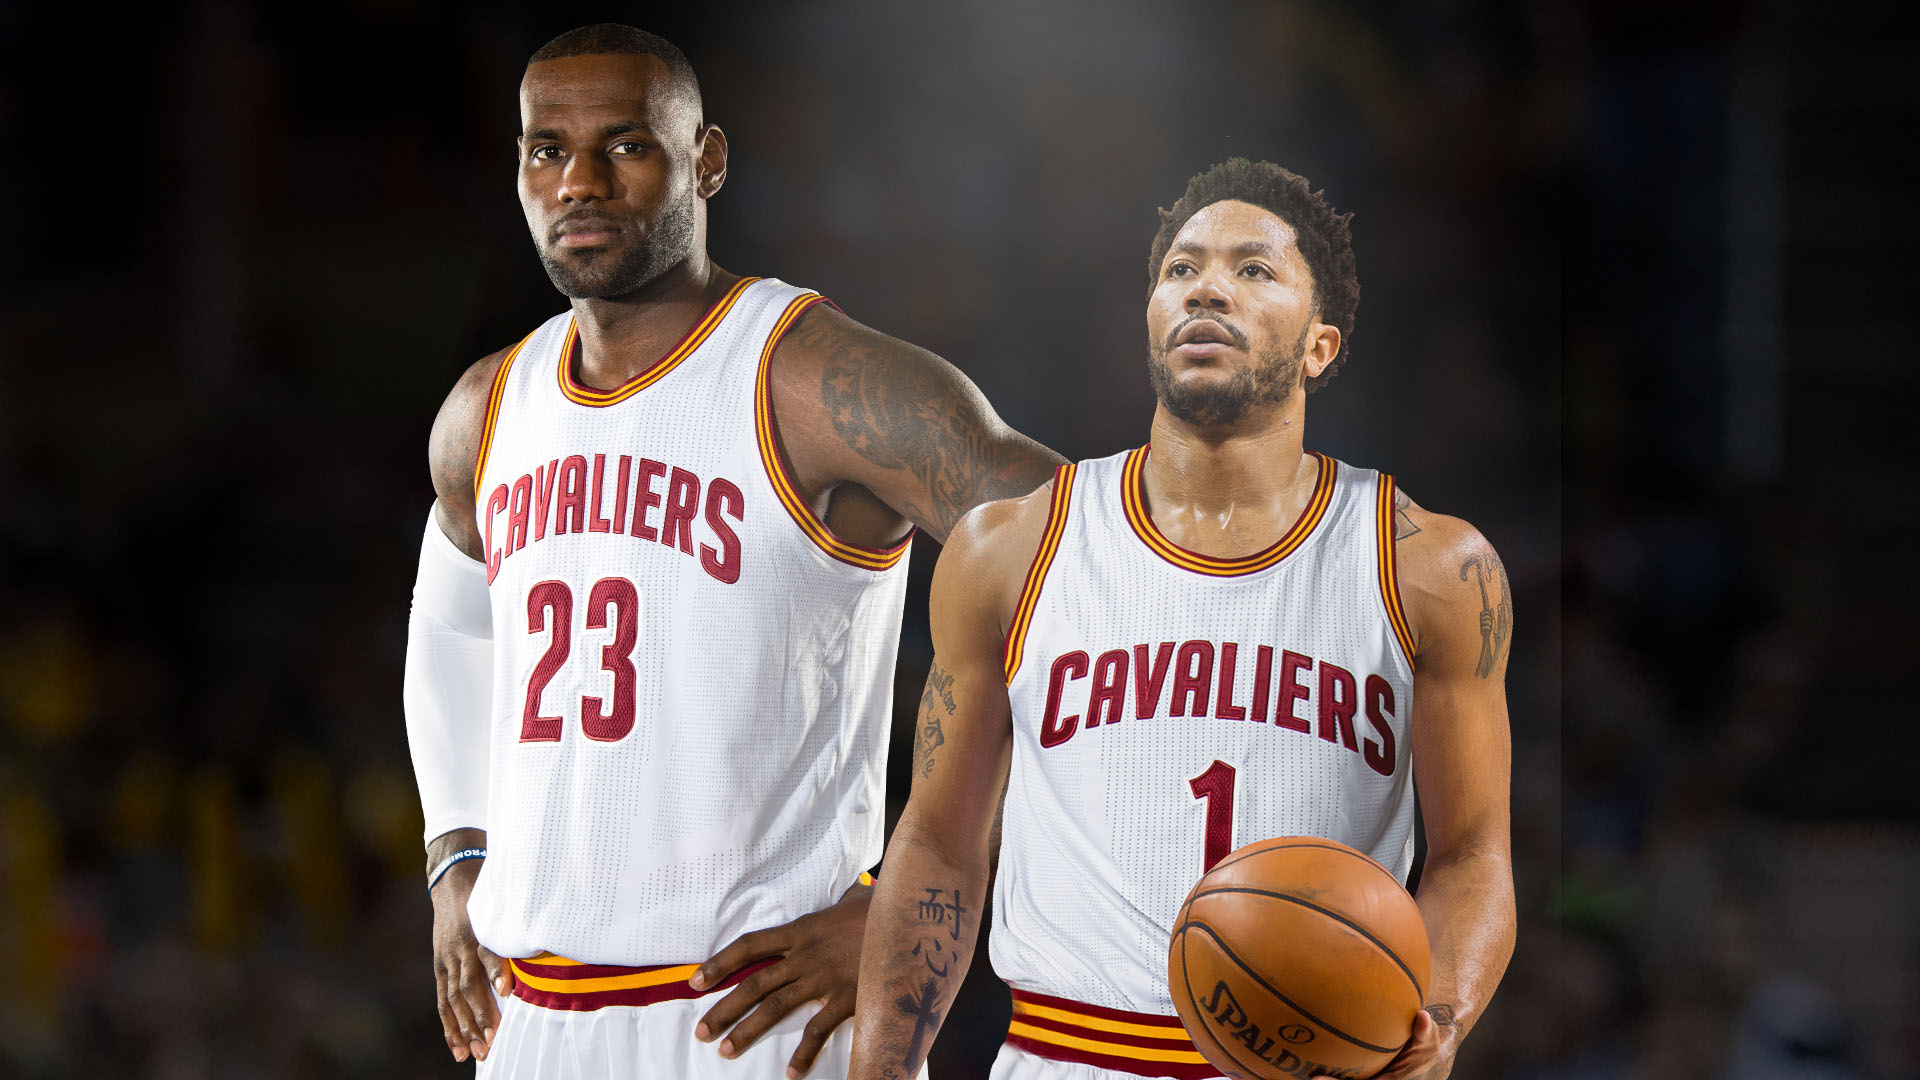 Lakers reportedly competing with Cavs to sign Derrick Rose